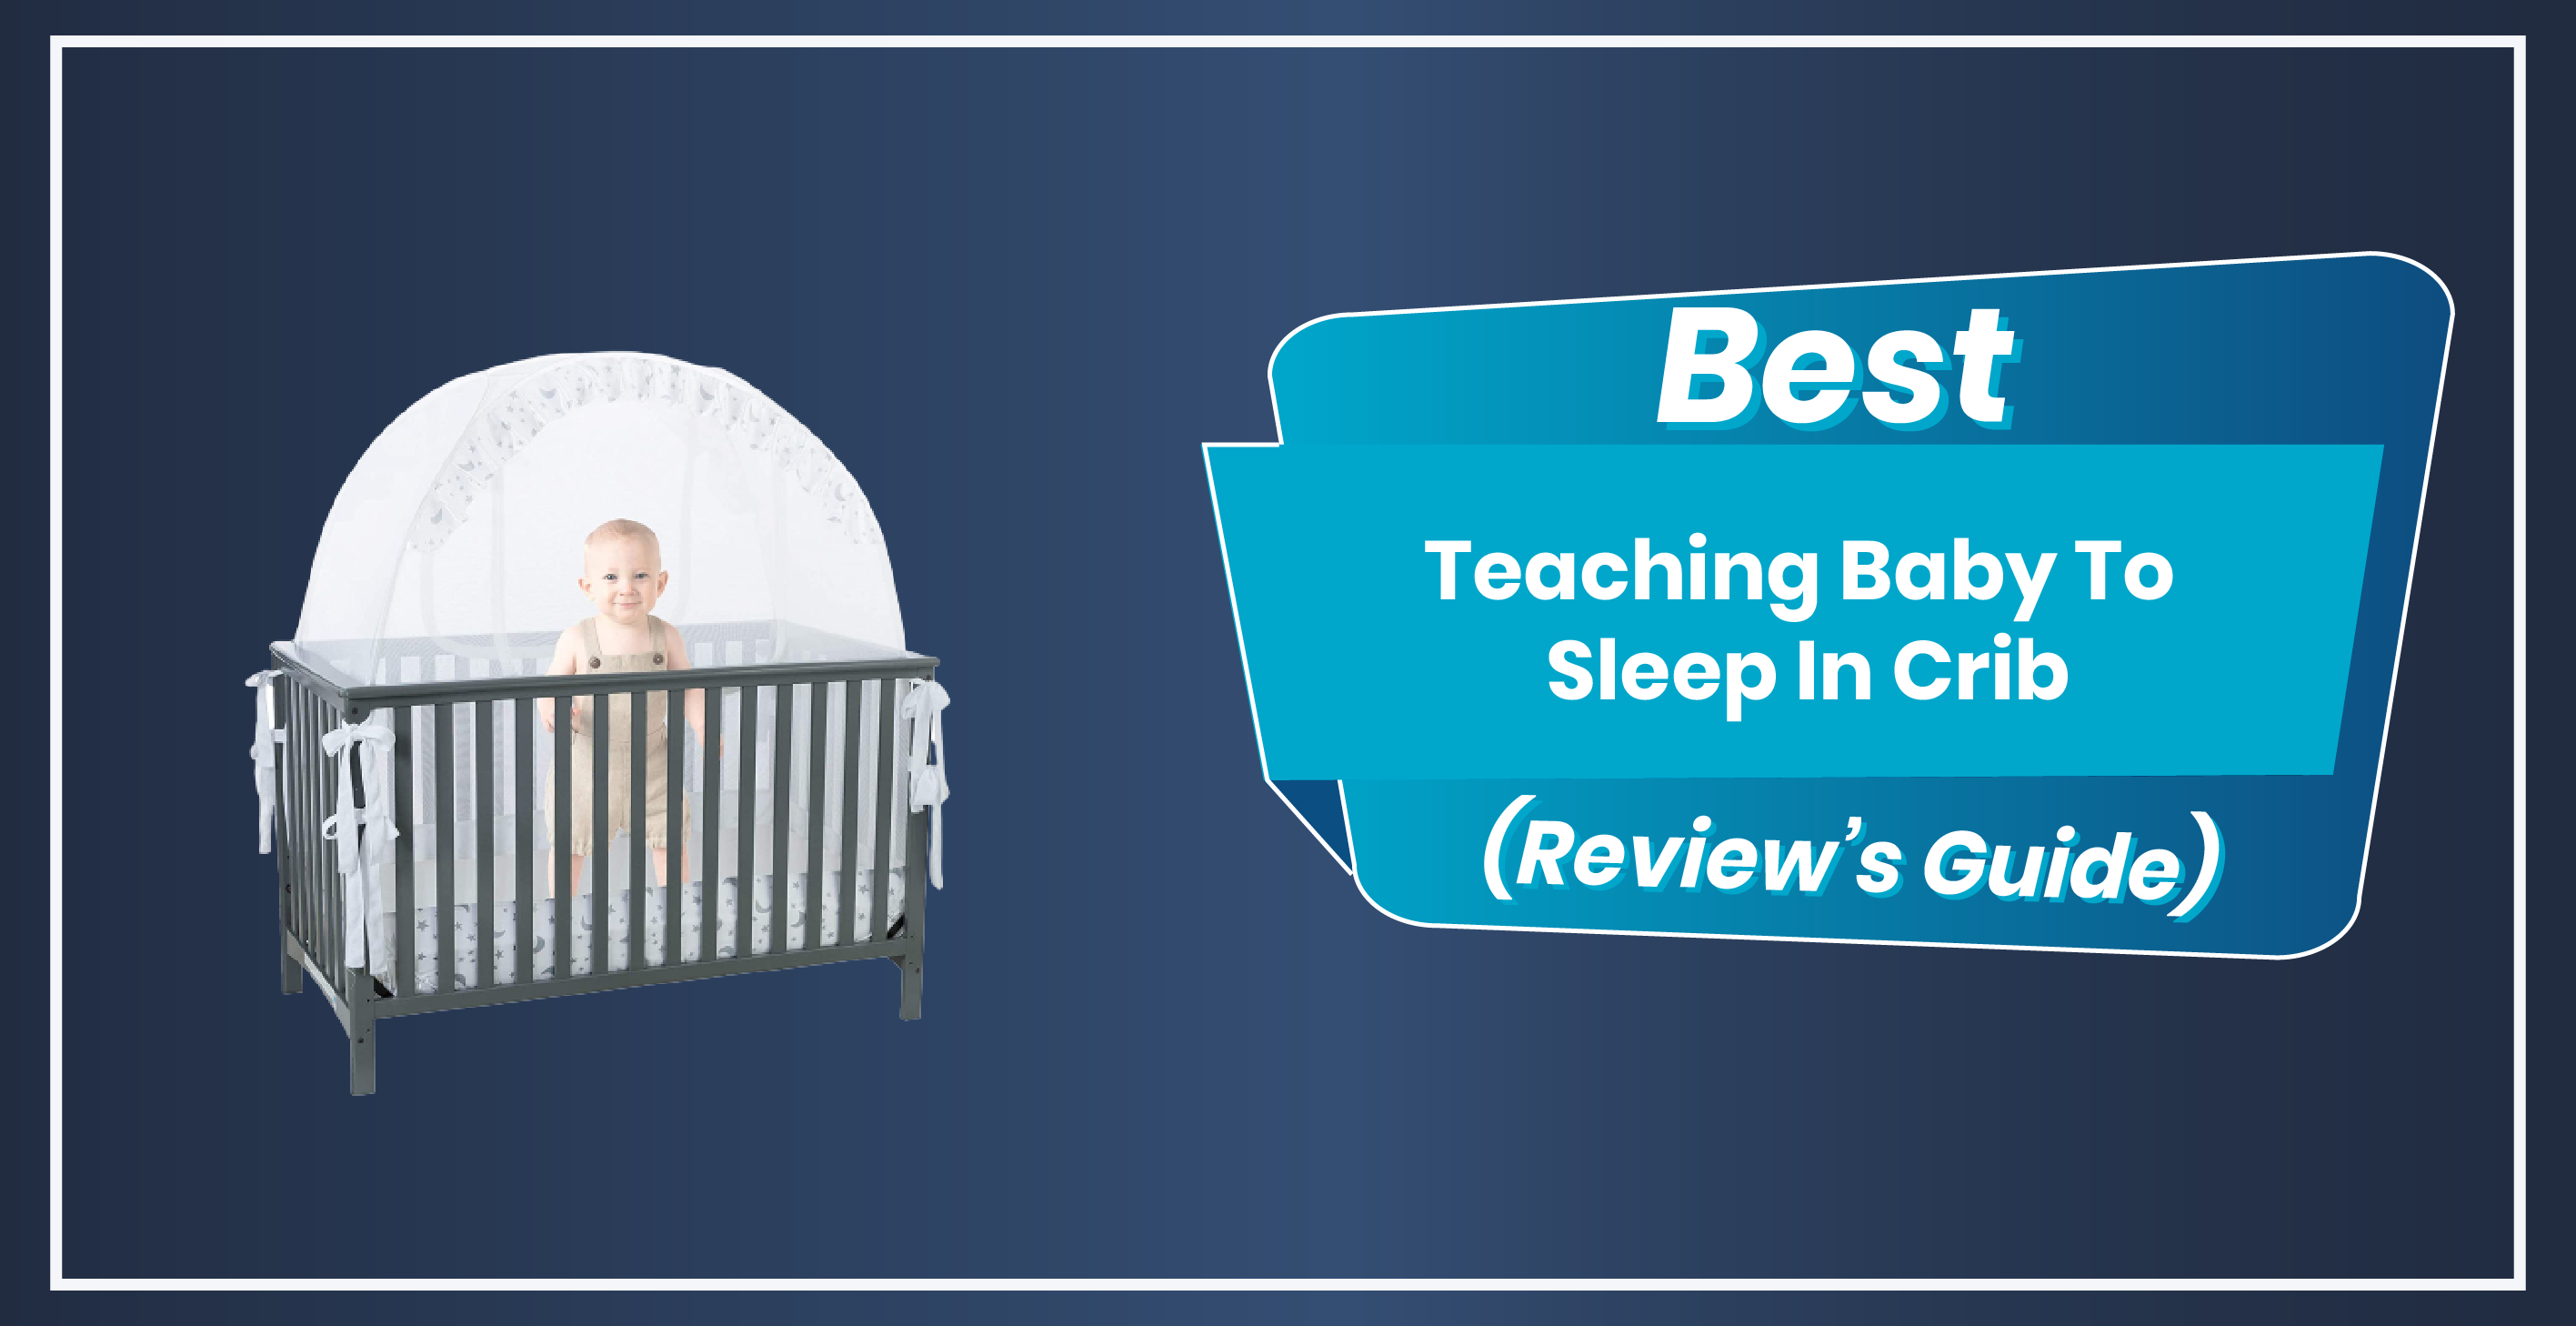 Teaching Baby To Sleep In Crib